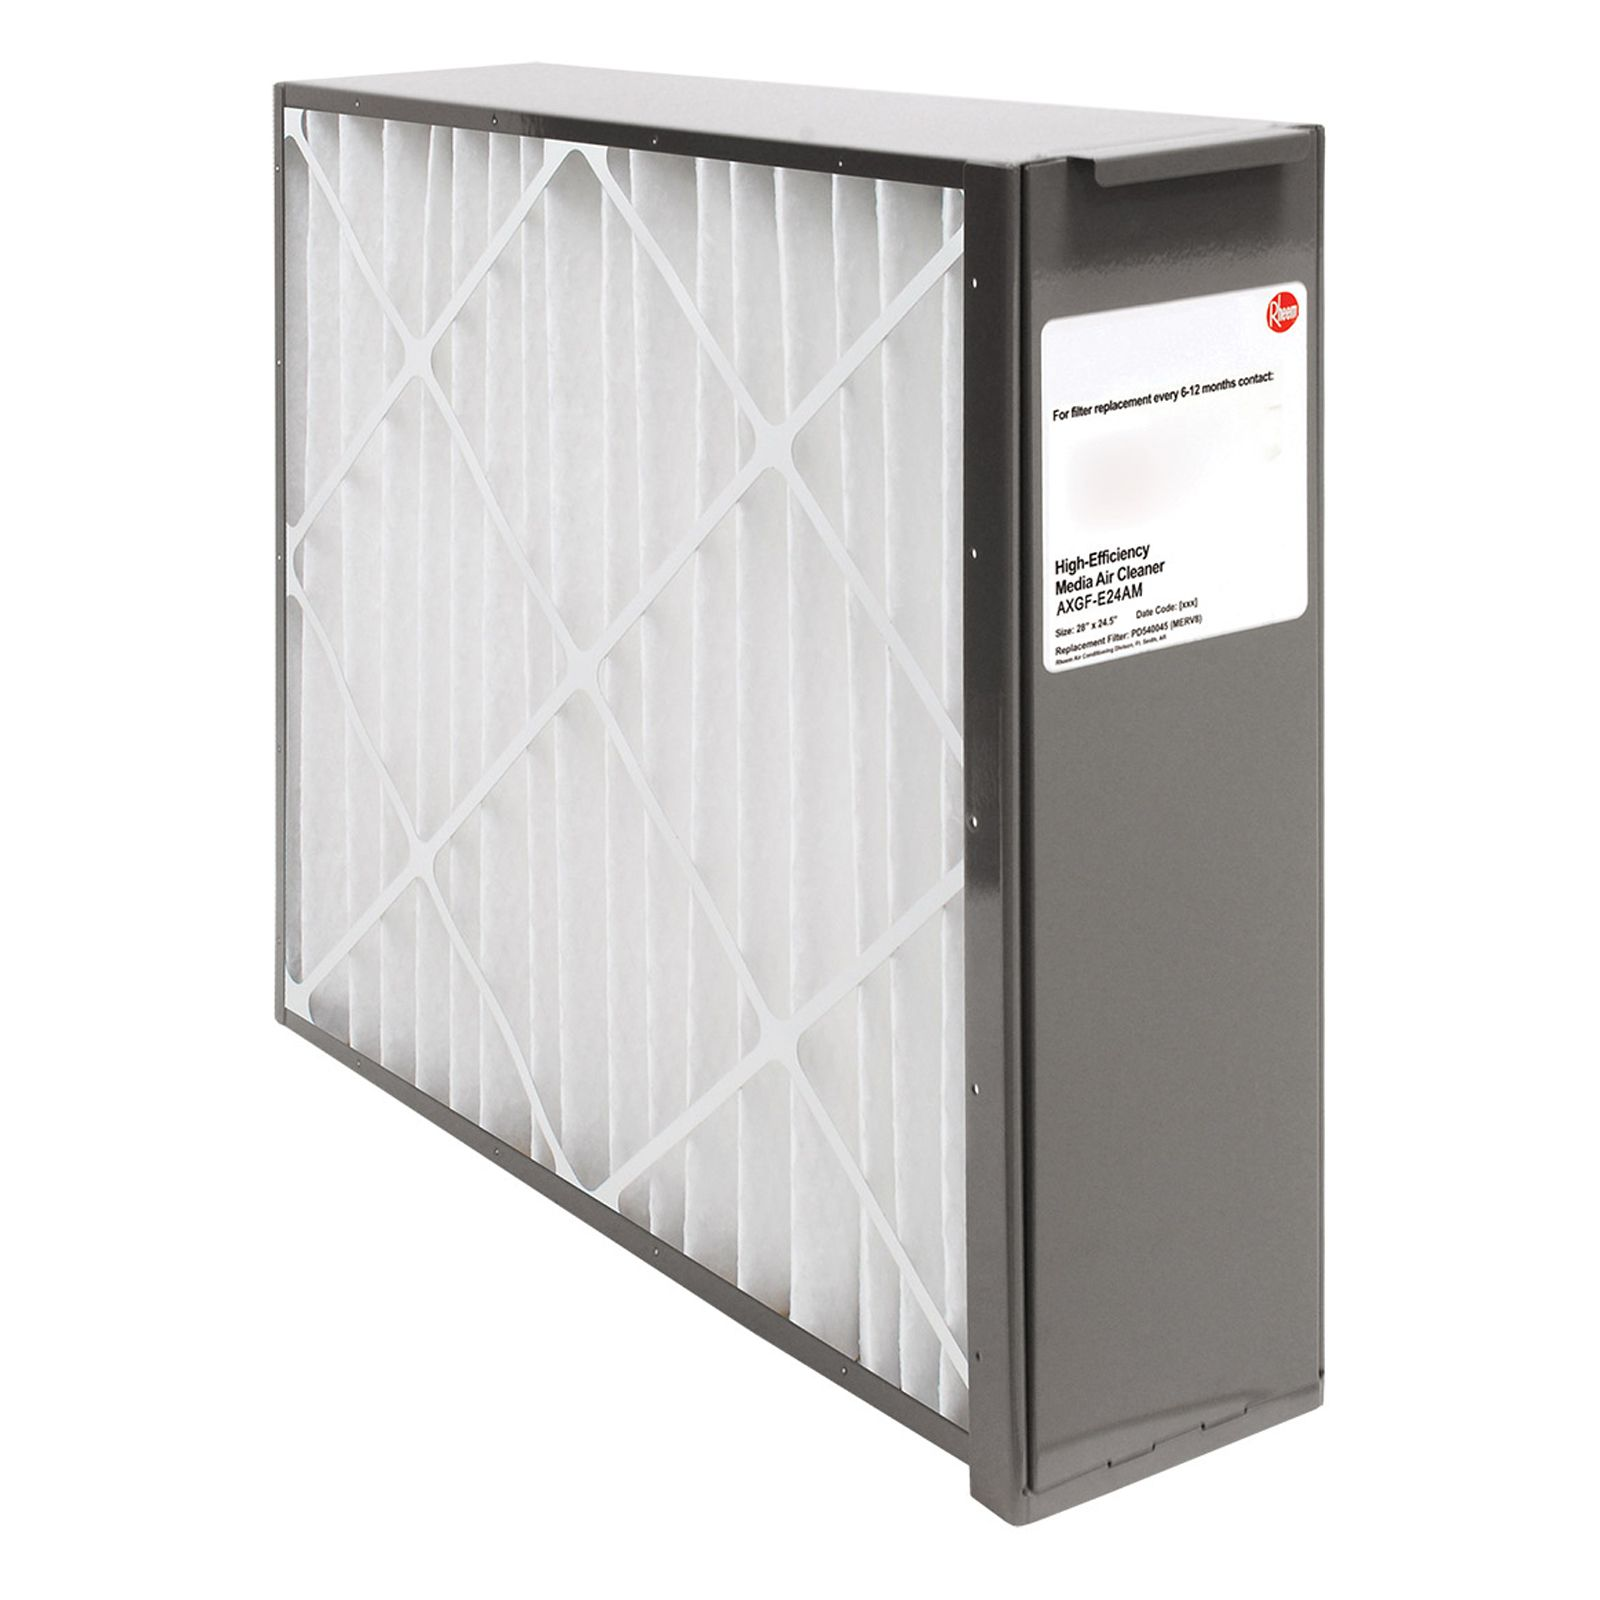 Rheem AXGF-E24AM -  PROTECH Exact Fit Media Air Cleaners for Gas Furnaces - Includes Merv 8 Filter Media - 24 1/2""